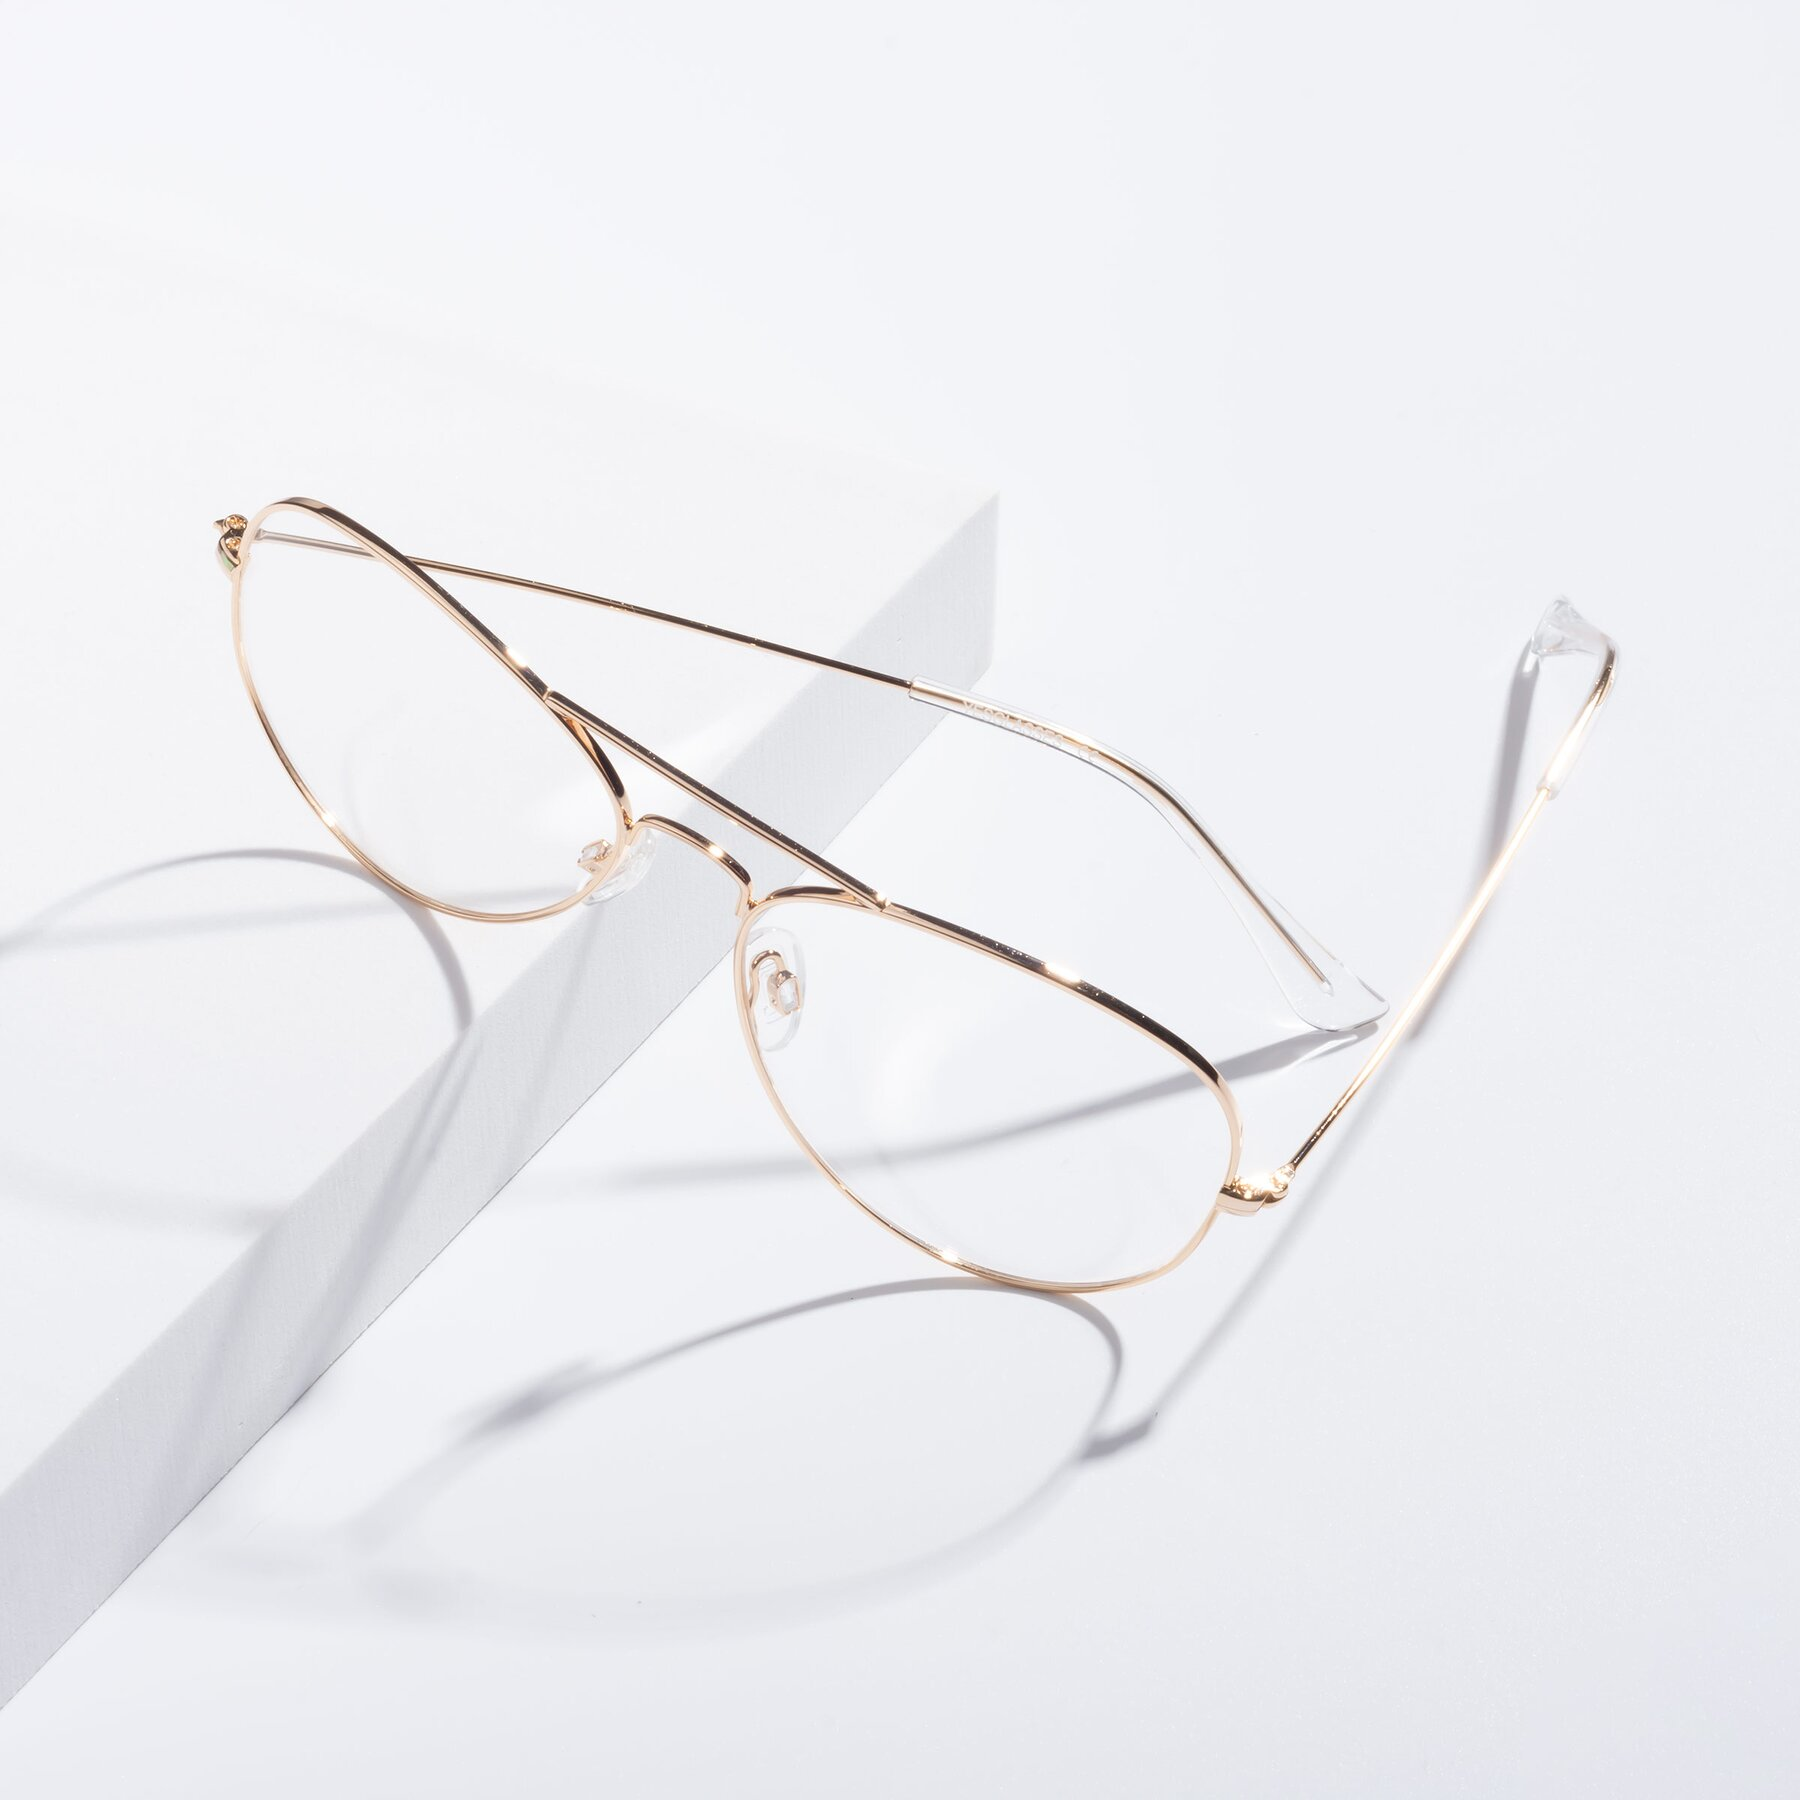 Lifestyle photography #2 of Yesterday in Shiny Gold with Clear Eyeglass Lenses